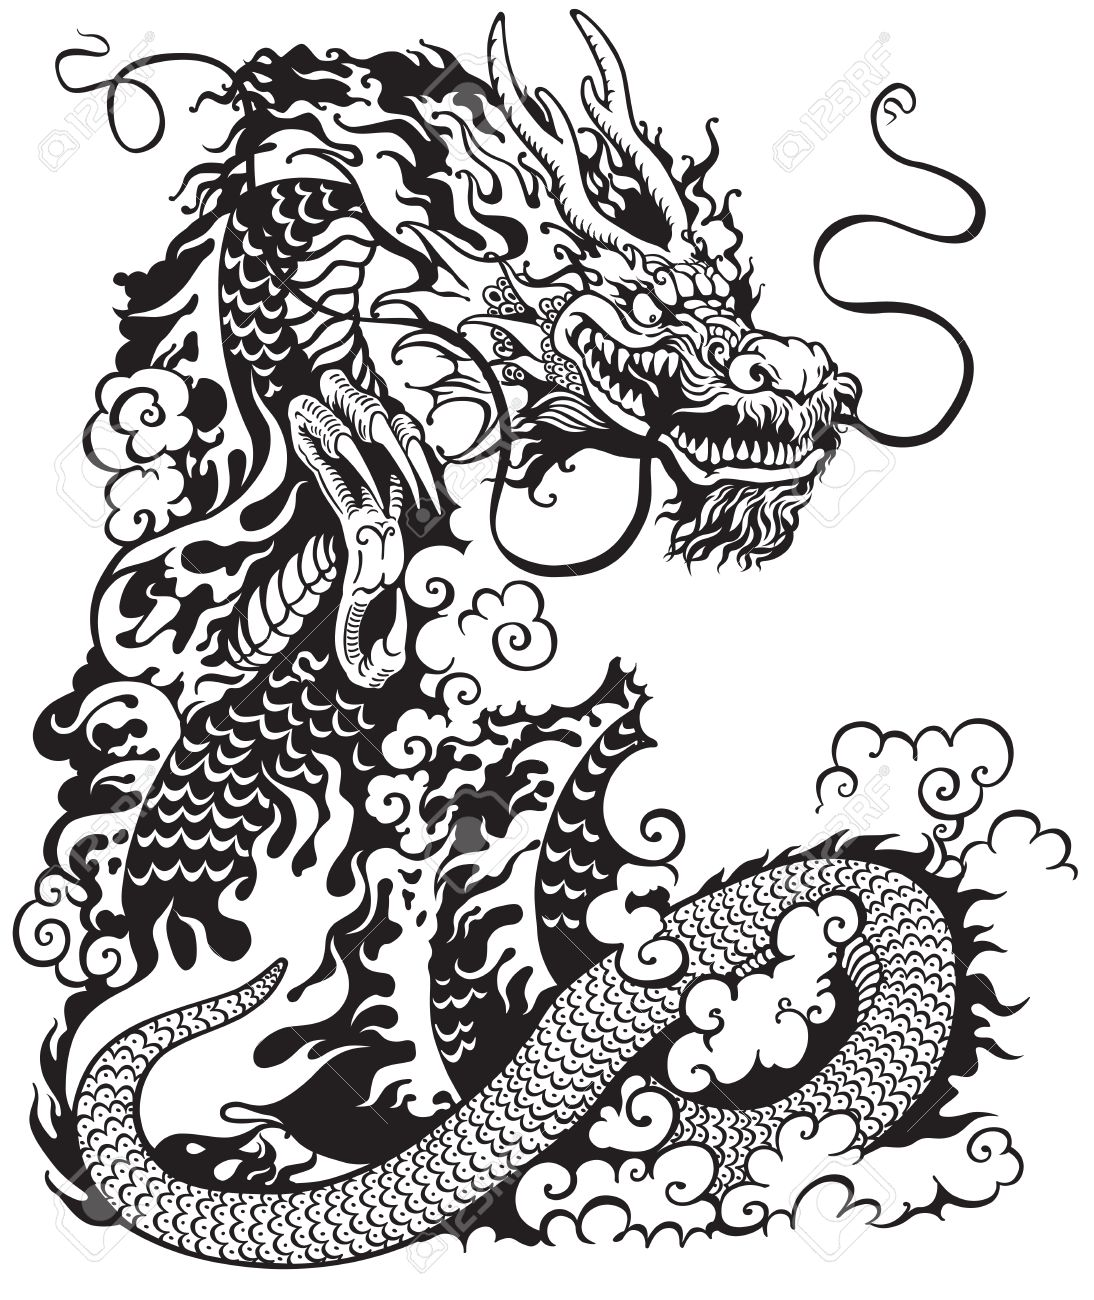 chinese dragon, black and white tattoo illustration.